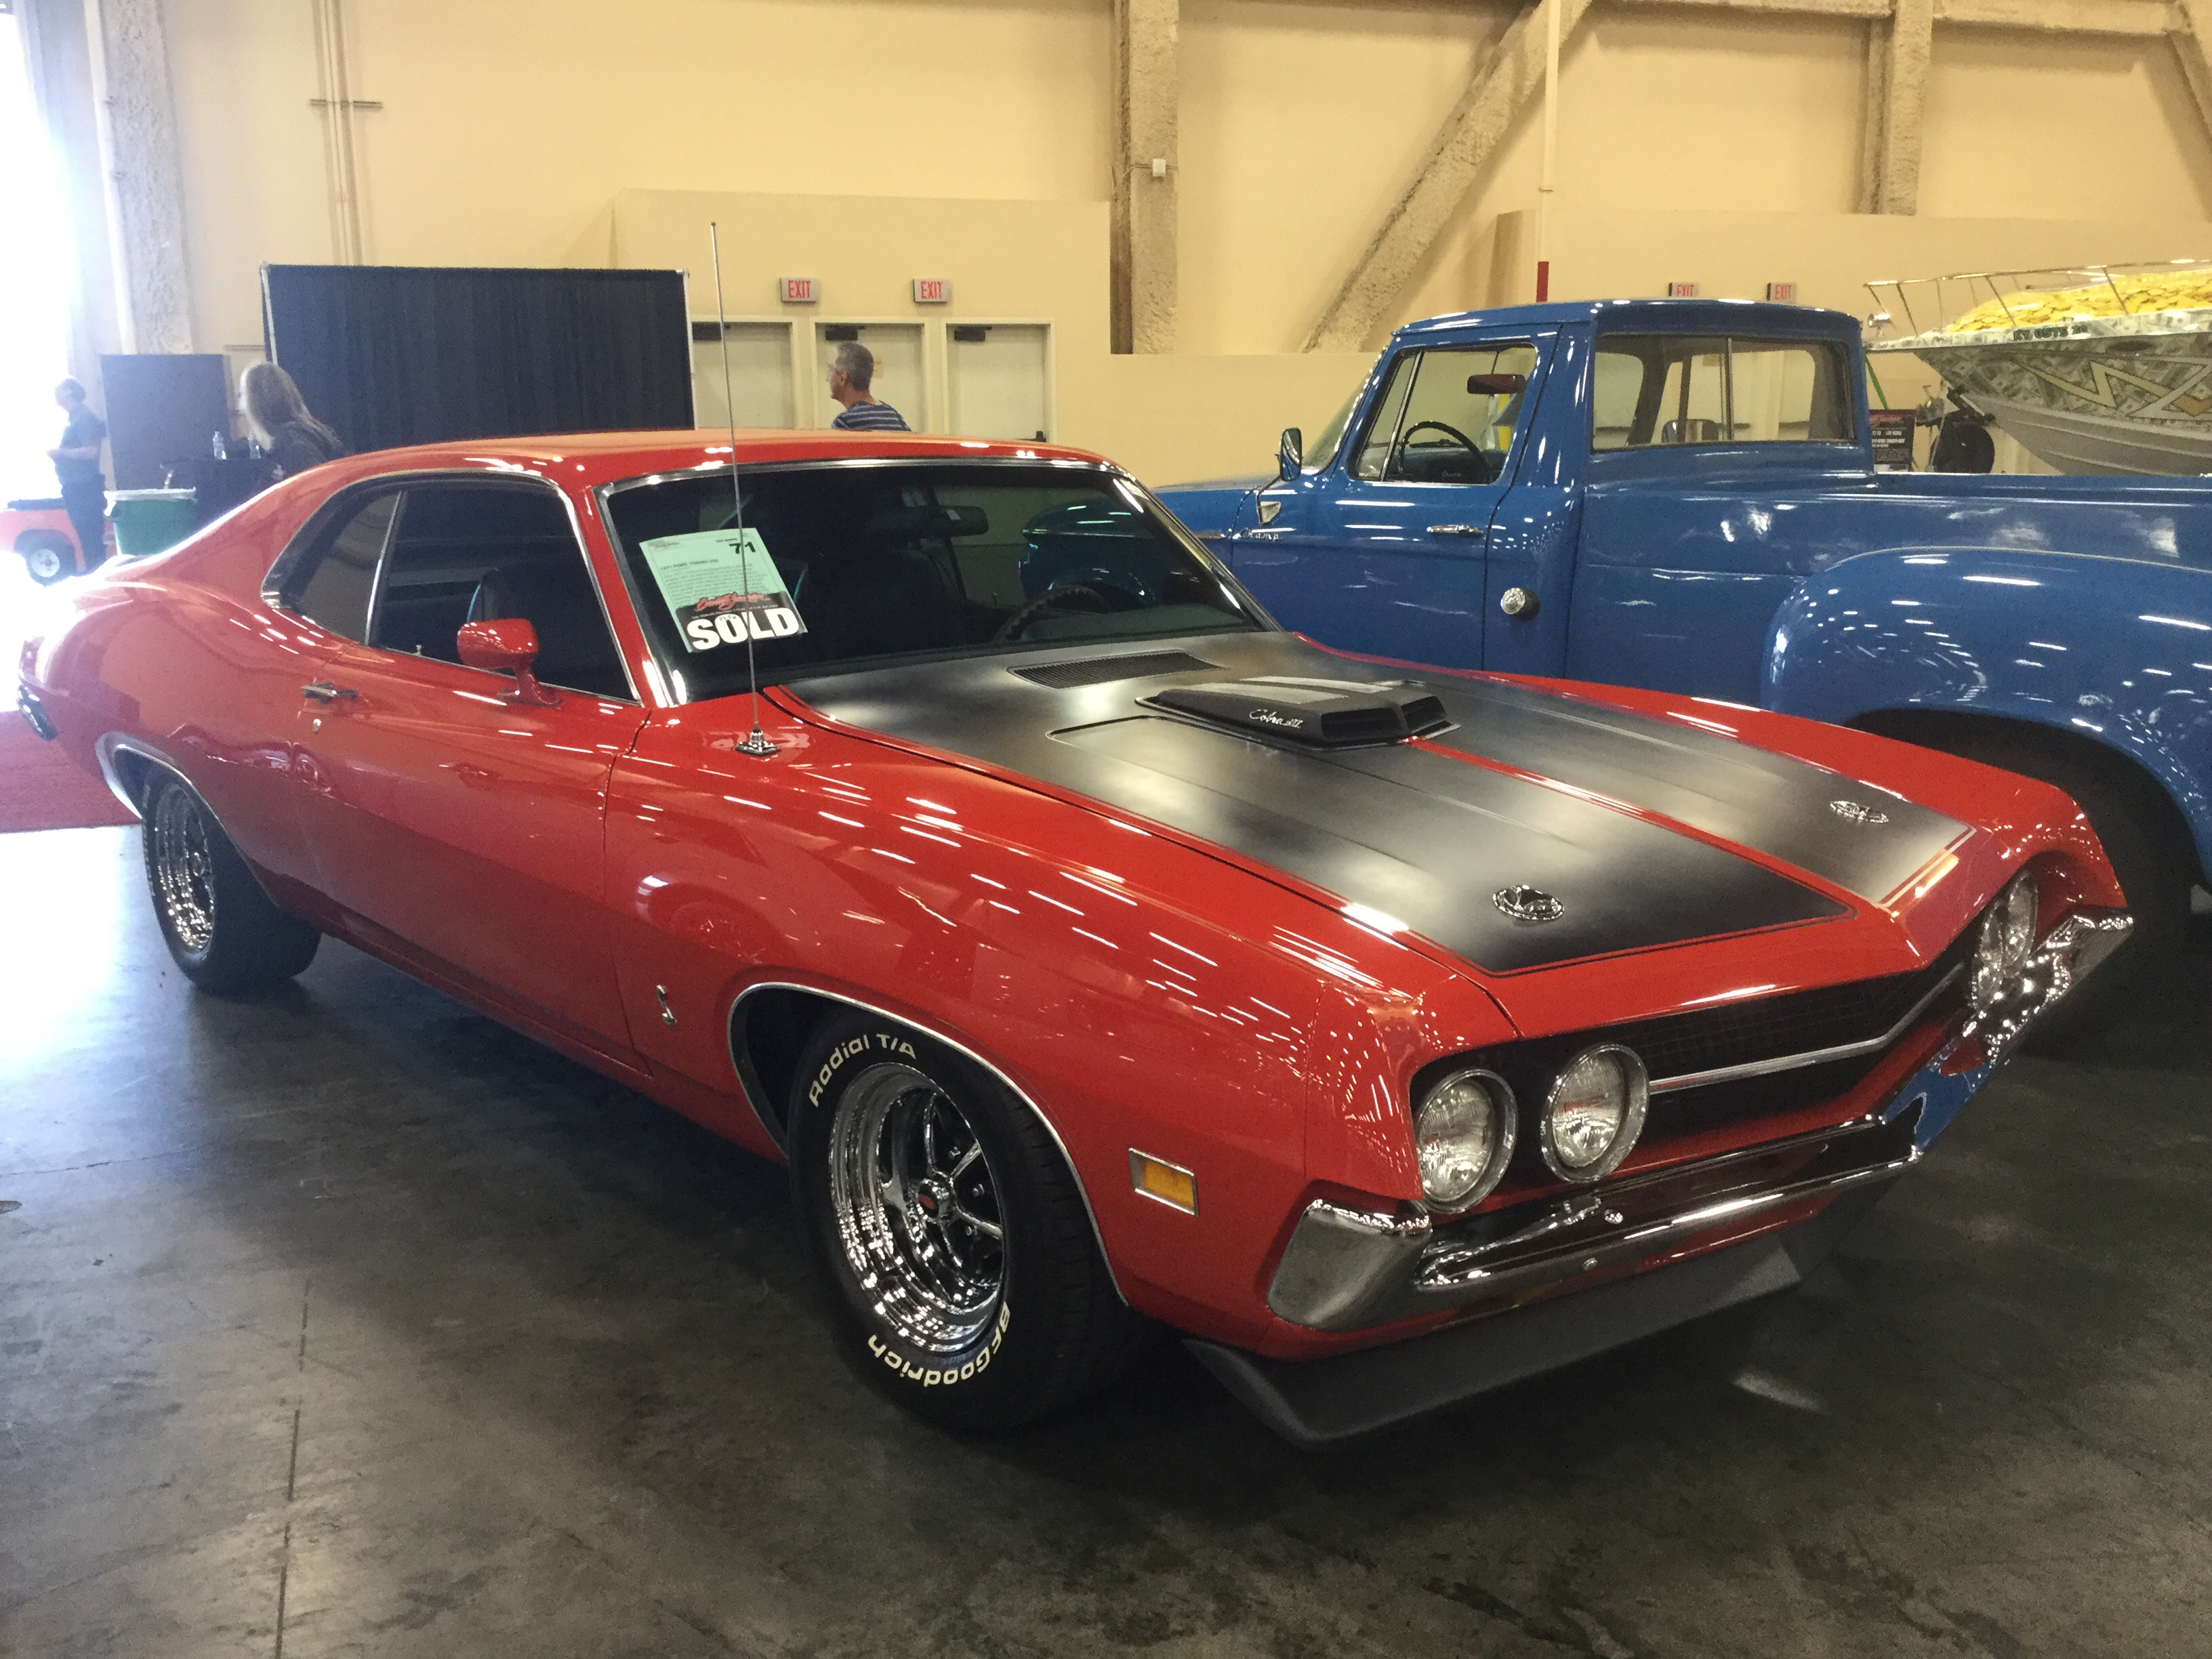 1971 Ford Torino Values Hagerty Valuation Tool 1970 Gt Fastback 500 Hardtop Coupe 8 Cyl 351cid 285hp 4bbl